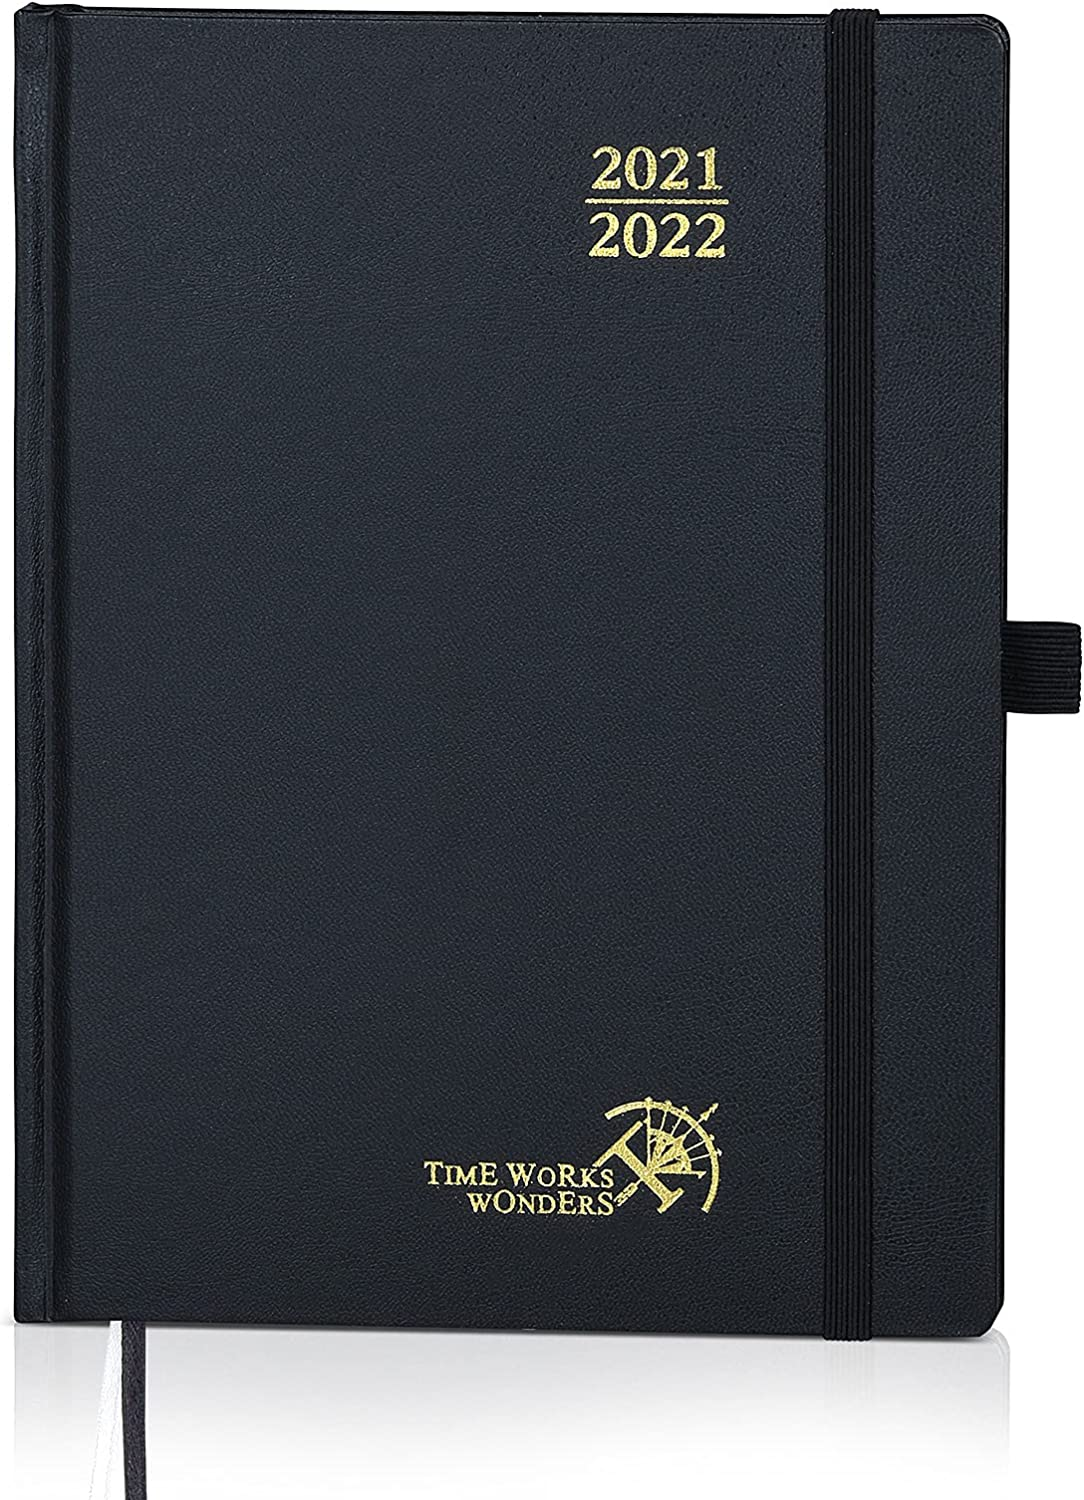 Academic Planner 2021-2022 Hourly Weekly - Monthly Agenda service POPRUN Now on sale